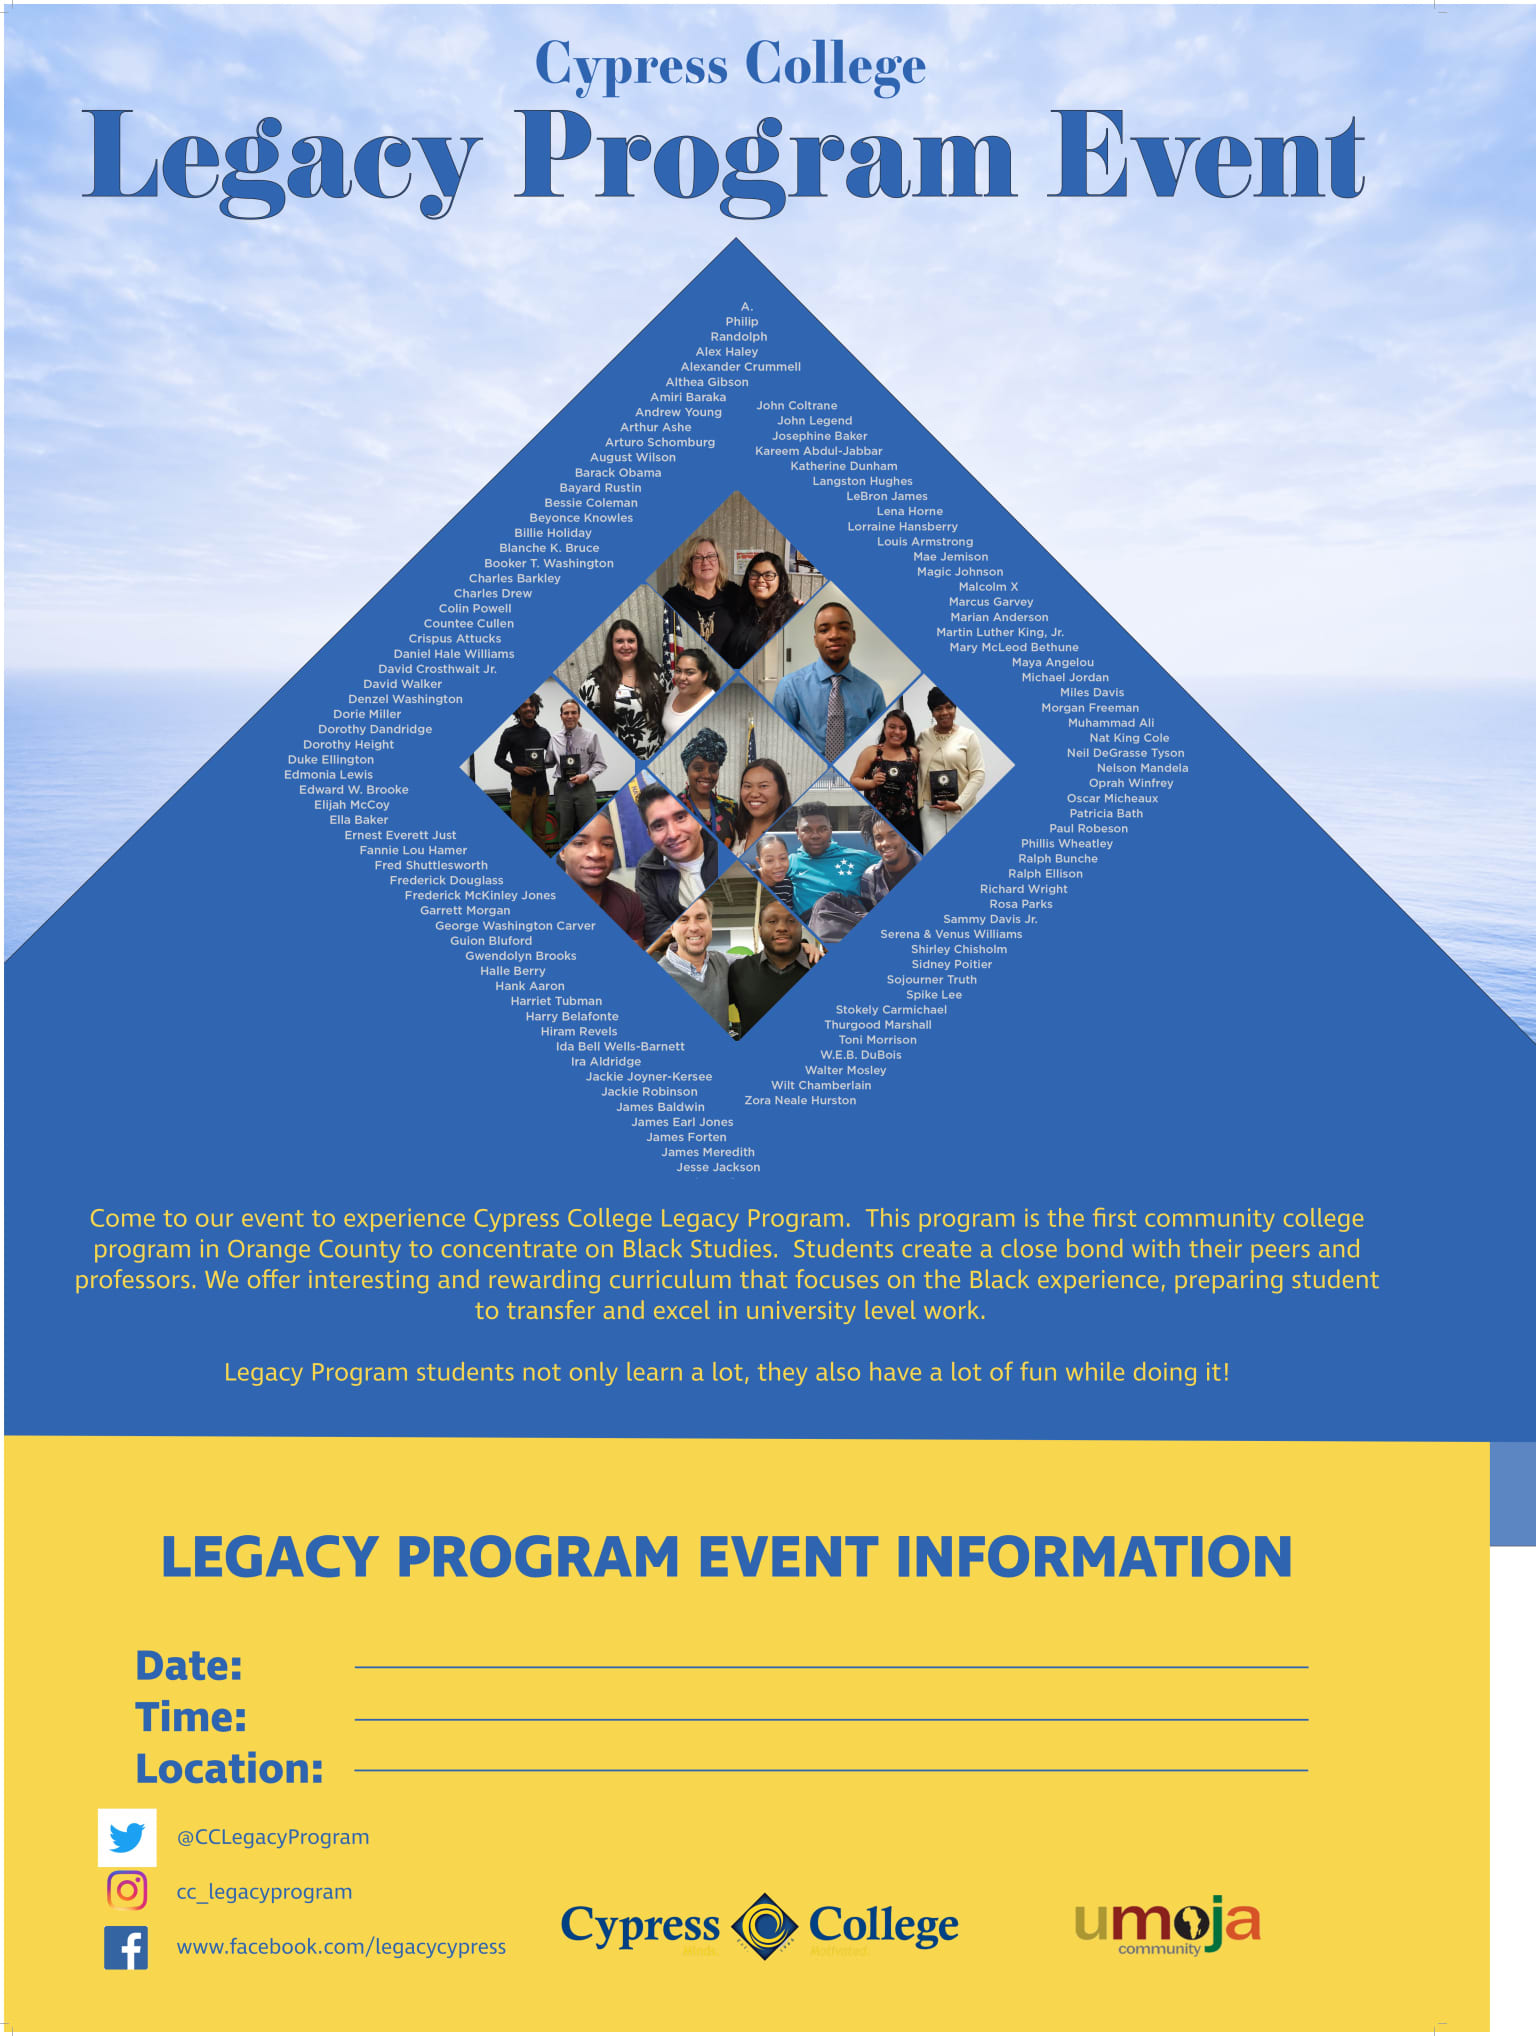 Marketing Materials for Legacy Program at Cypress College